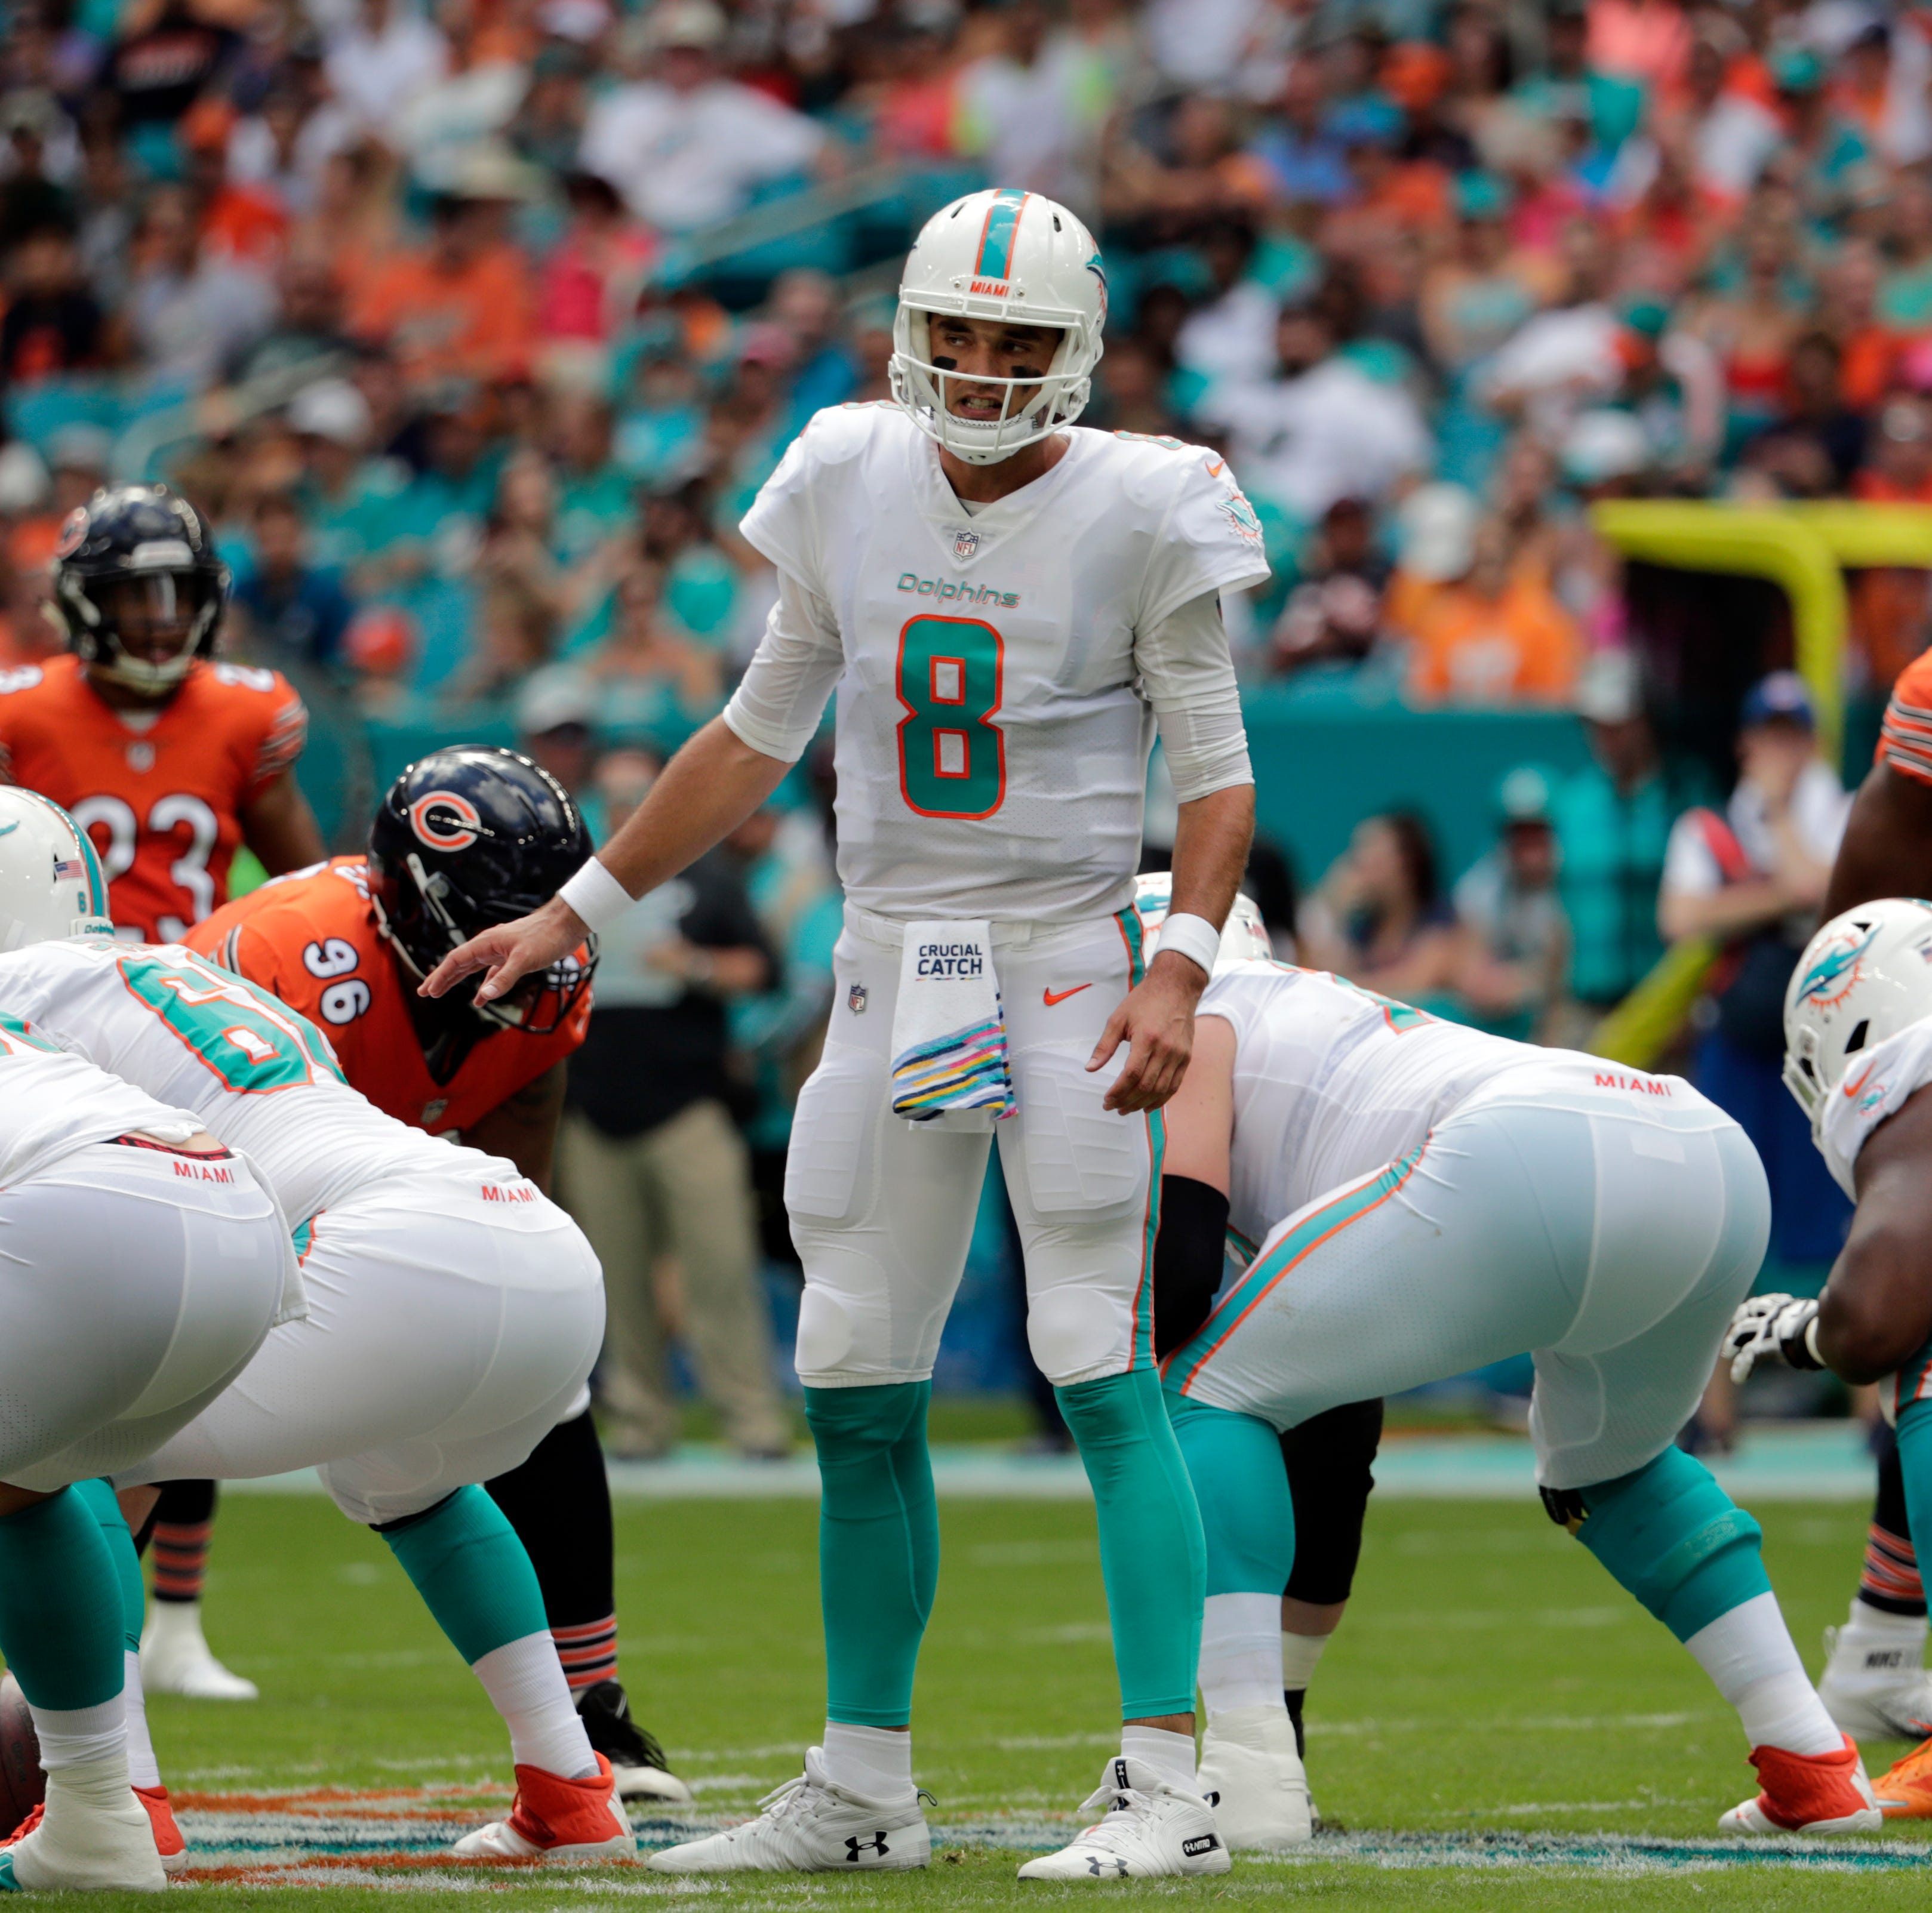 Osweiler's play cheers family, friends back home